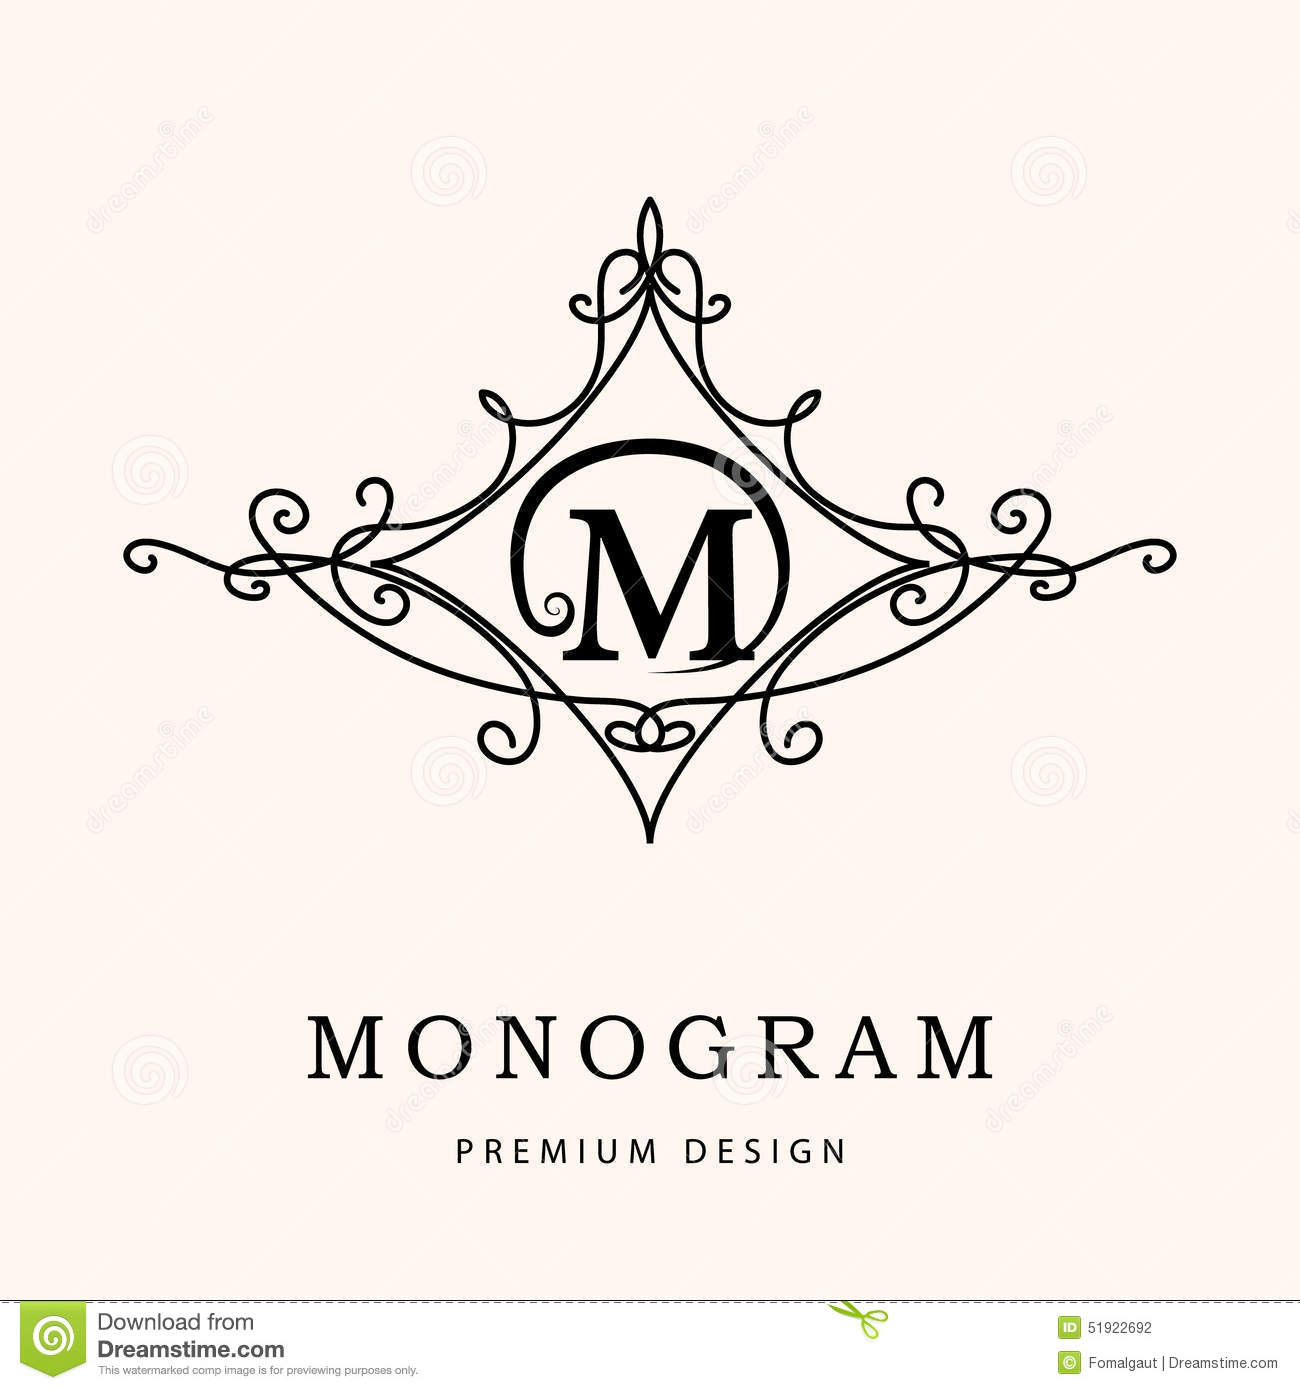 Monogram design elements graceful template elegant line art logo monogram design elements graceful template elegant line art logo design letter m emblem vector illustration illustration 51922692 megapixl pronofoot35fo Images